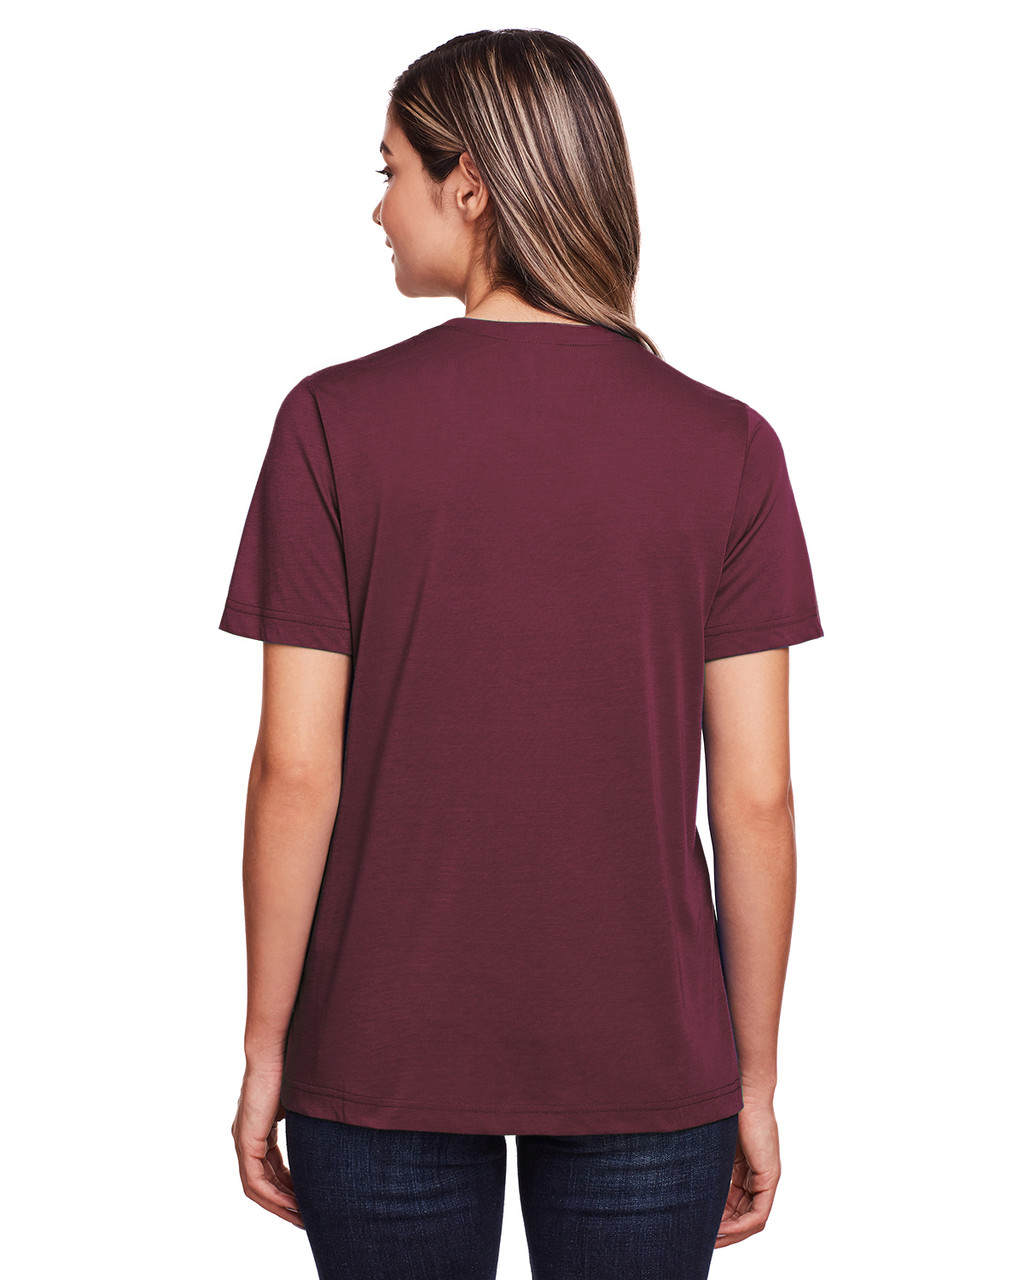 Burgundy - Back, CE111W Core 365 Ladies' Fusion ChromaSoft™ Performance T-Shirt | BlankClothing.ca